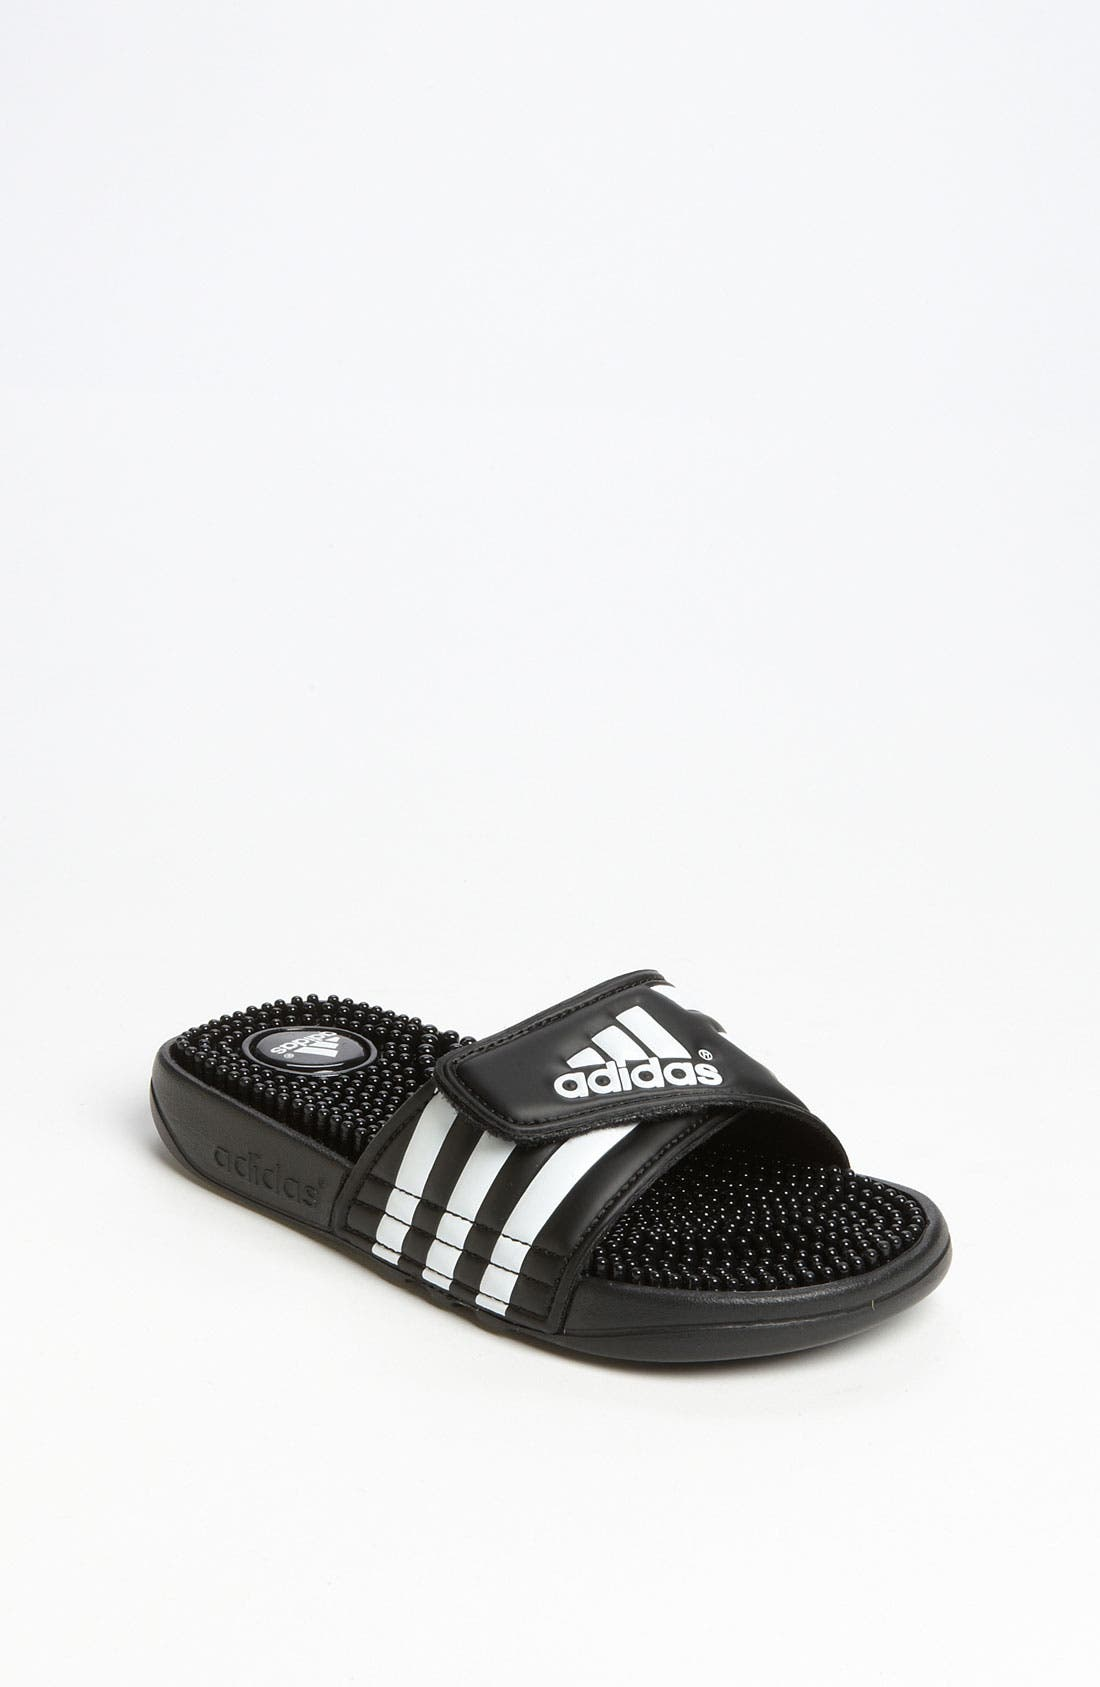 Main Image - adidas 'Adissage' Sandal (Toddler, Little Kid & Big Kid)